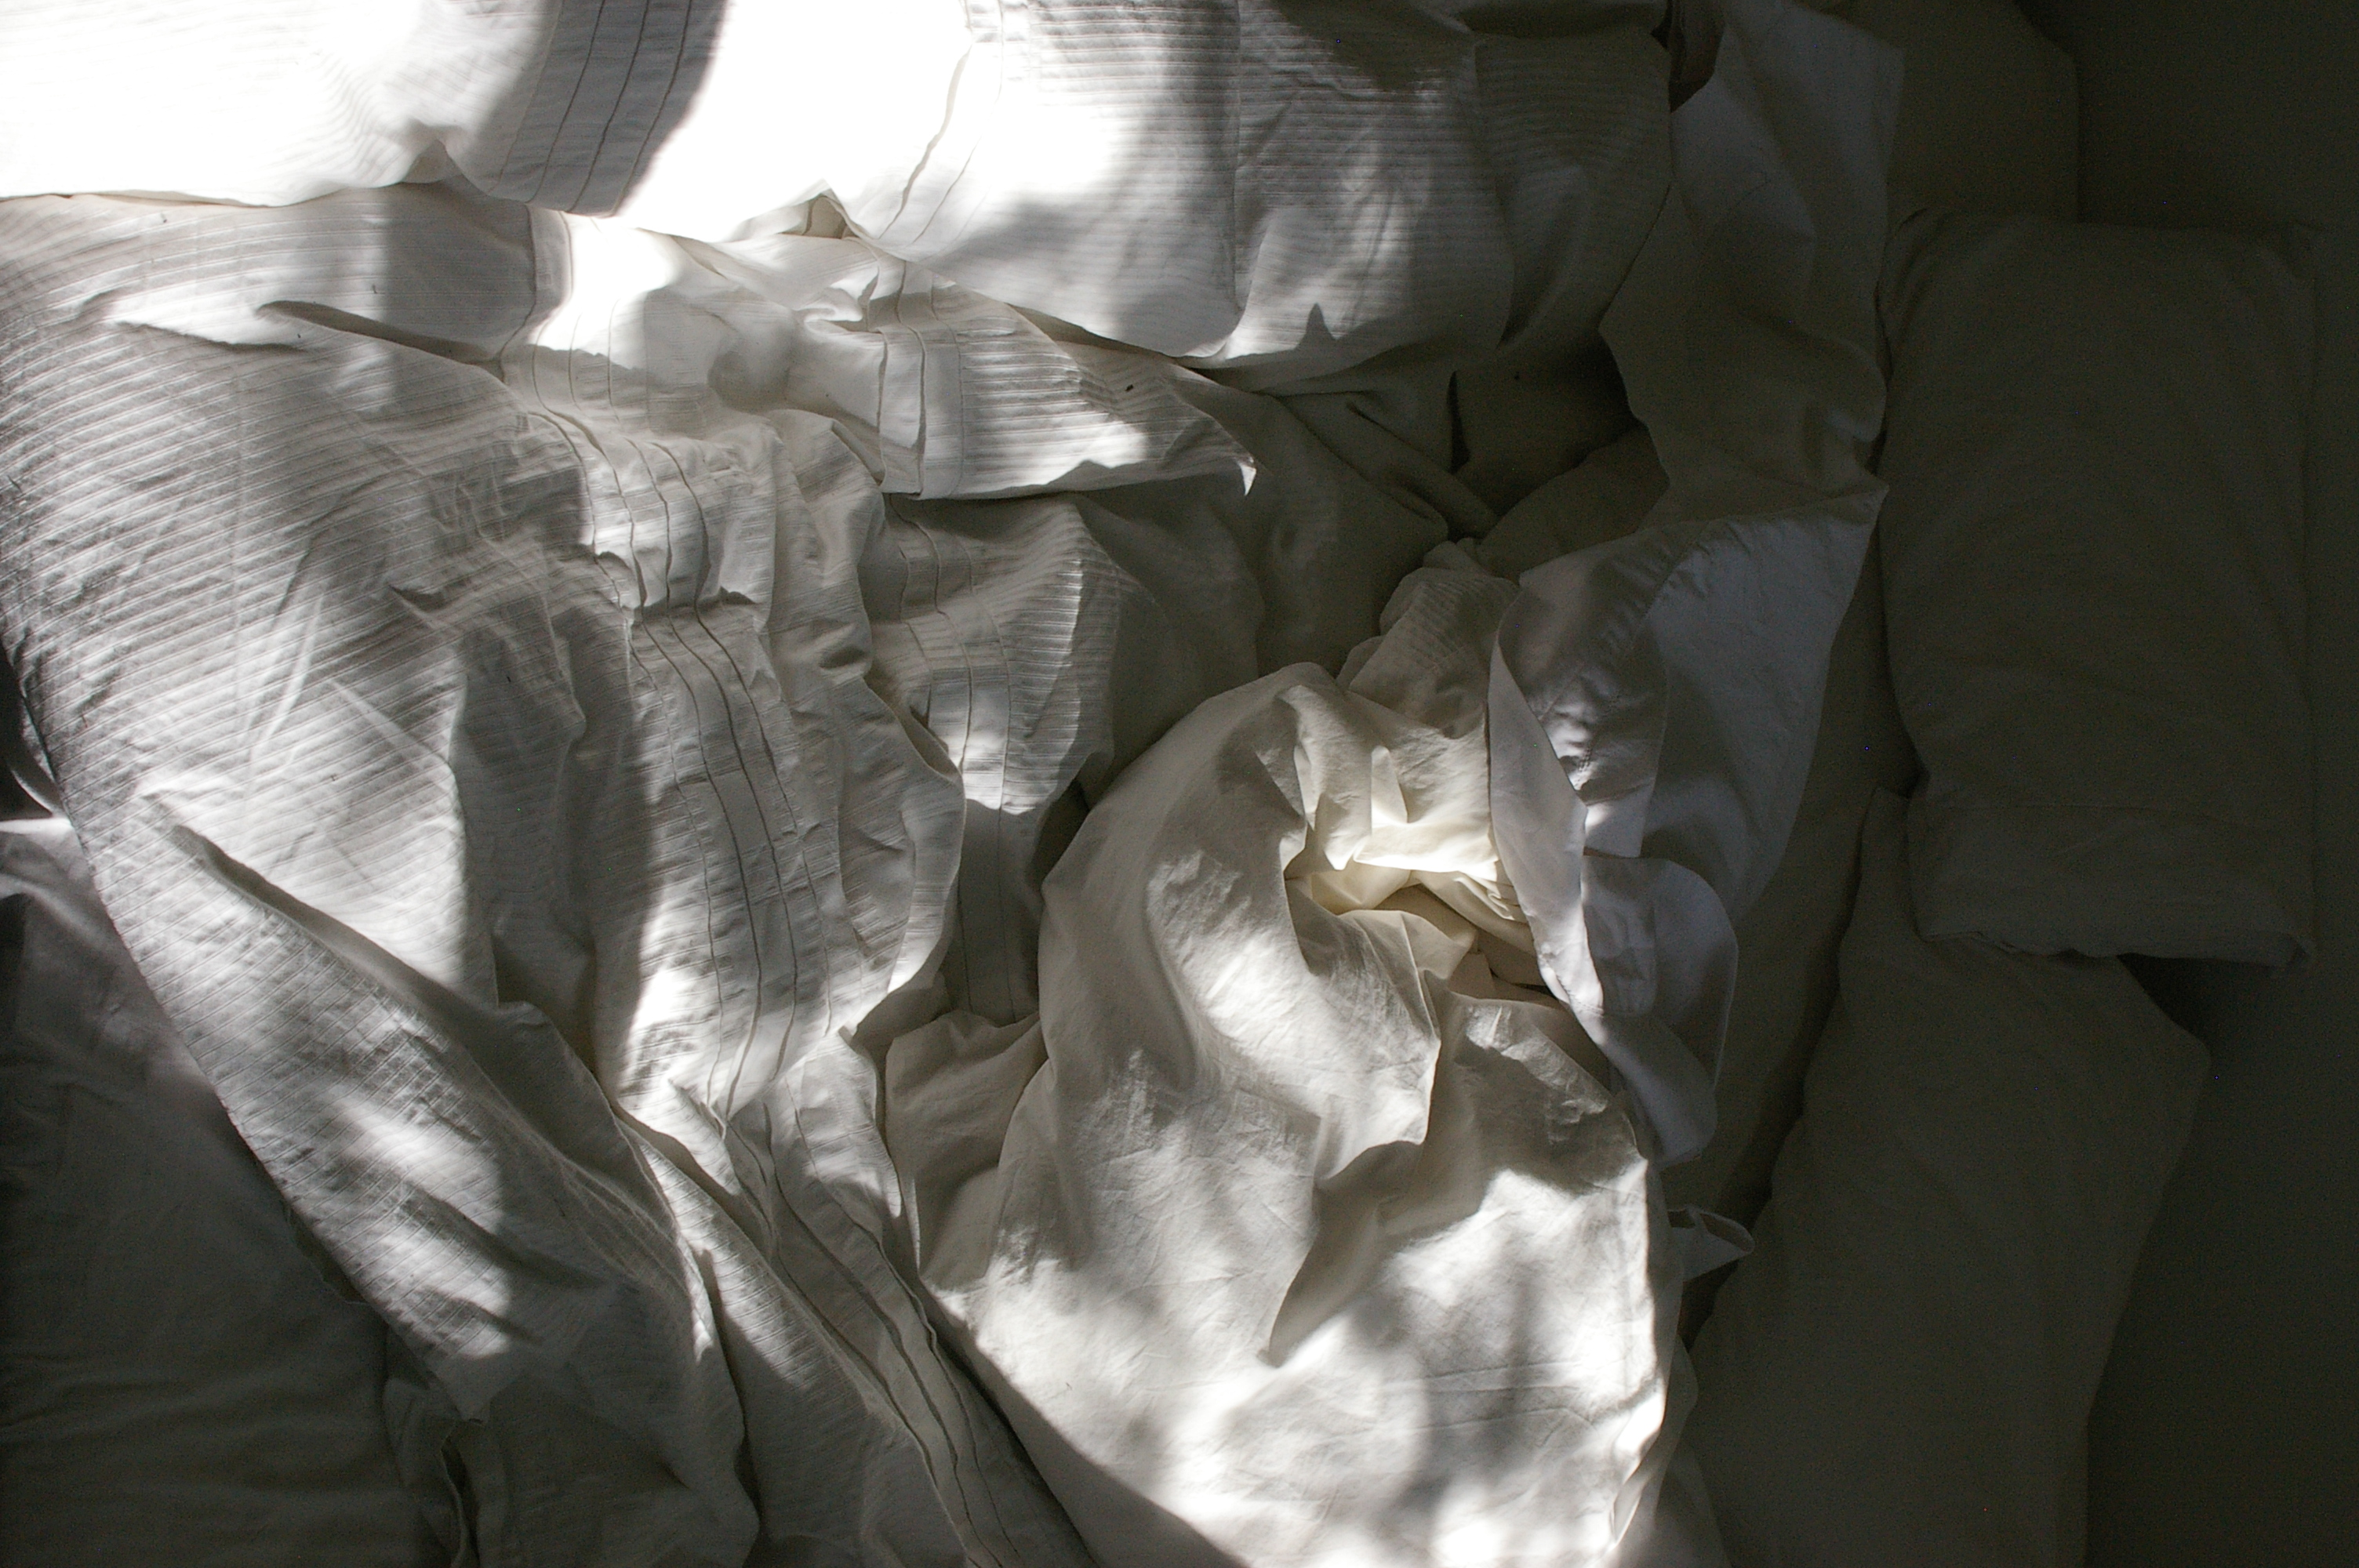 Bed _ _ _ Eliza Gower